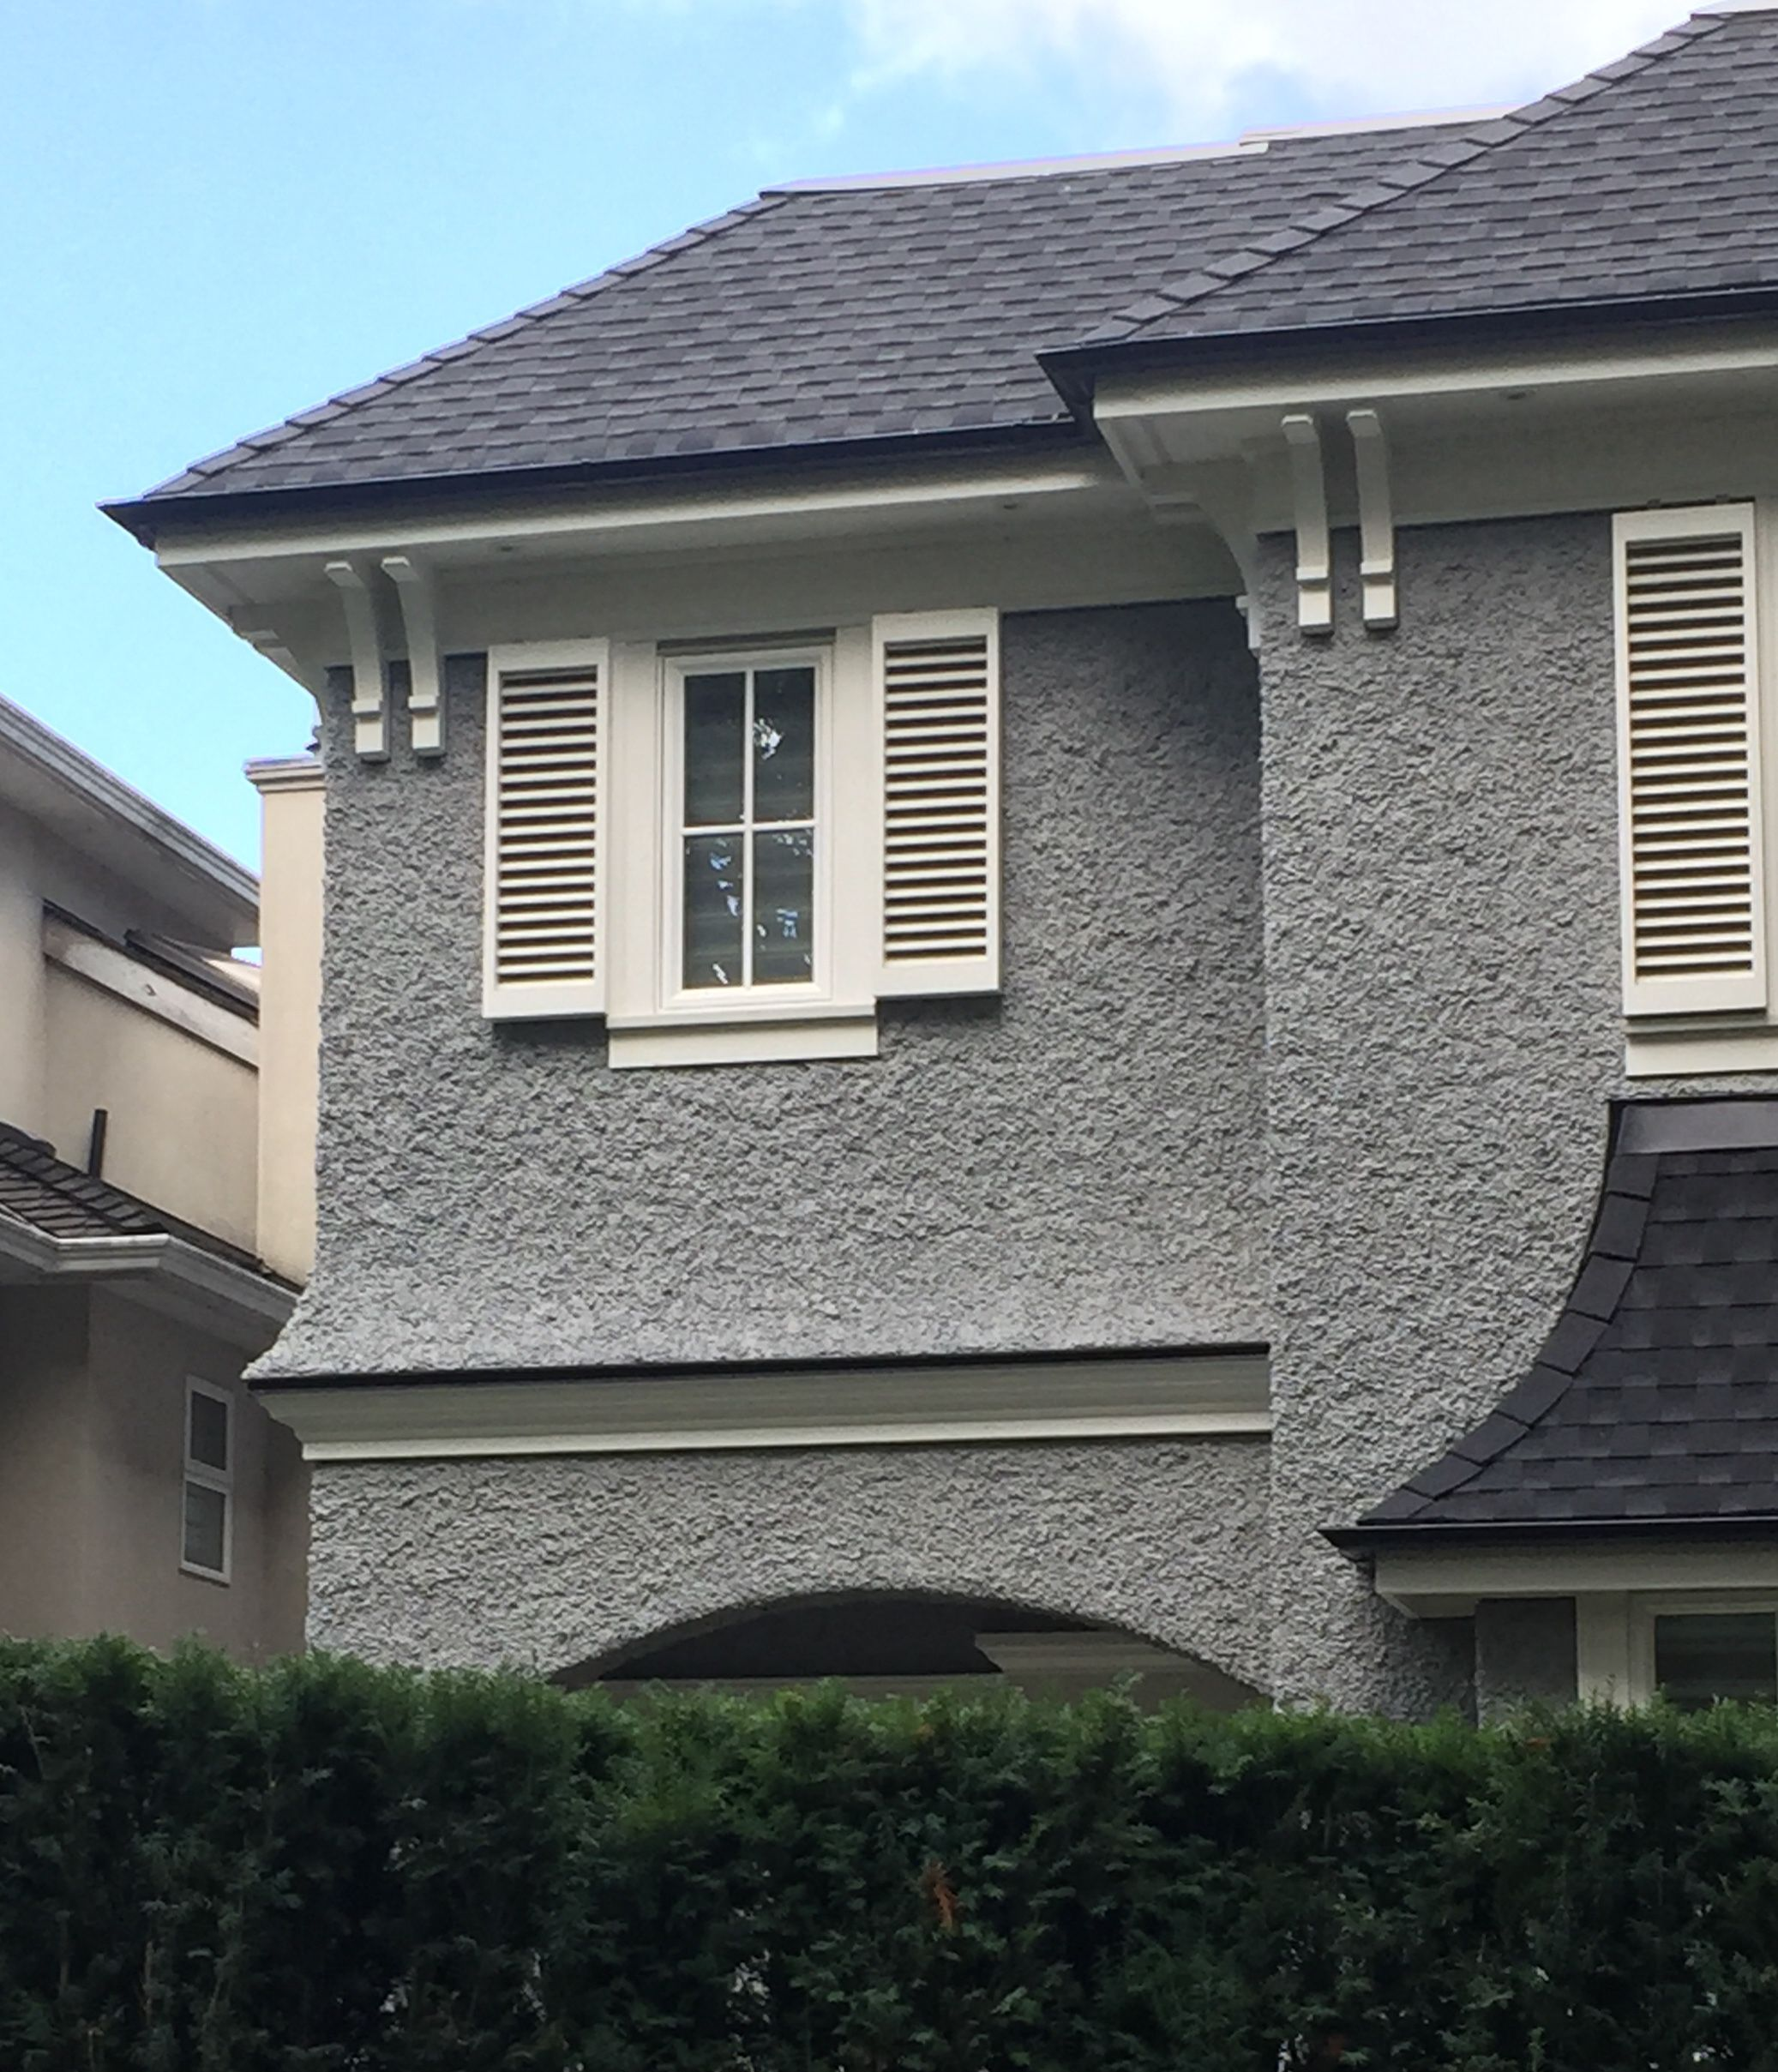 house colors grey stucco white windows and trim black roof gutters heavy slop stucco exterior